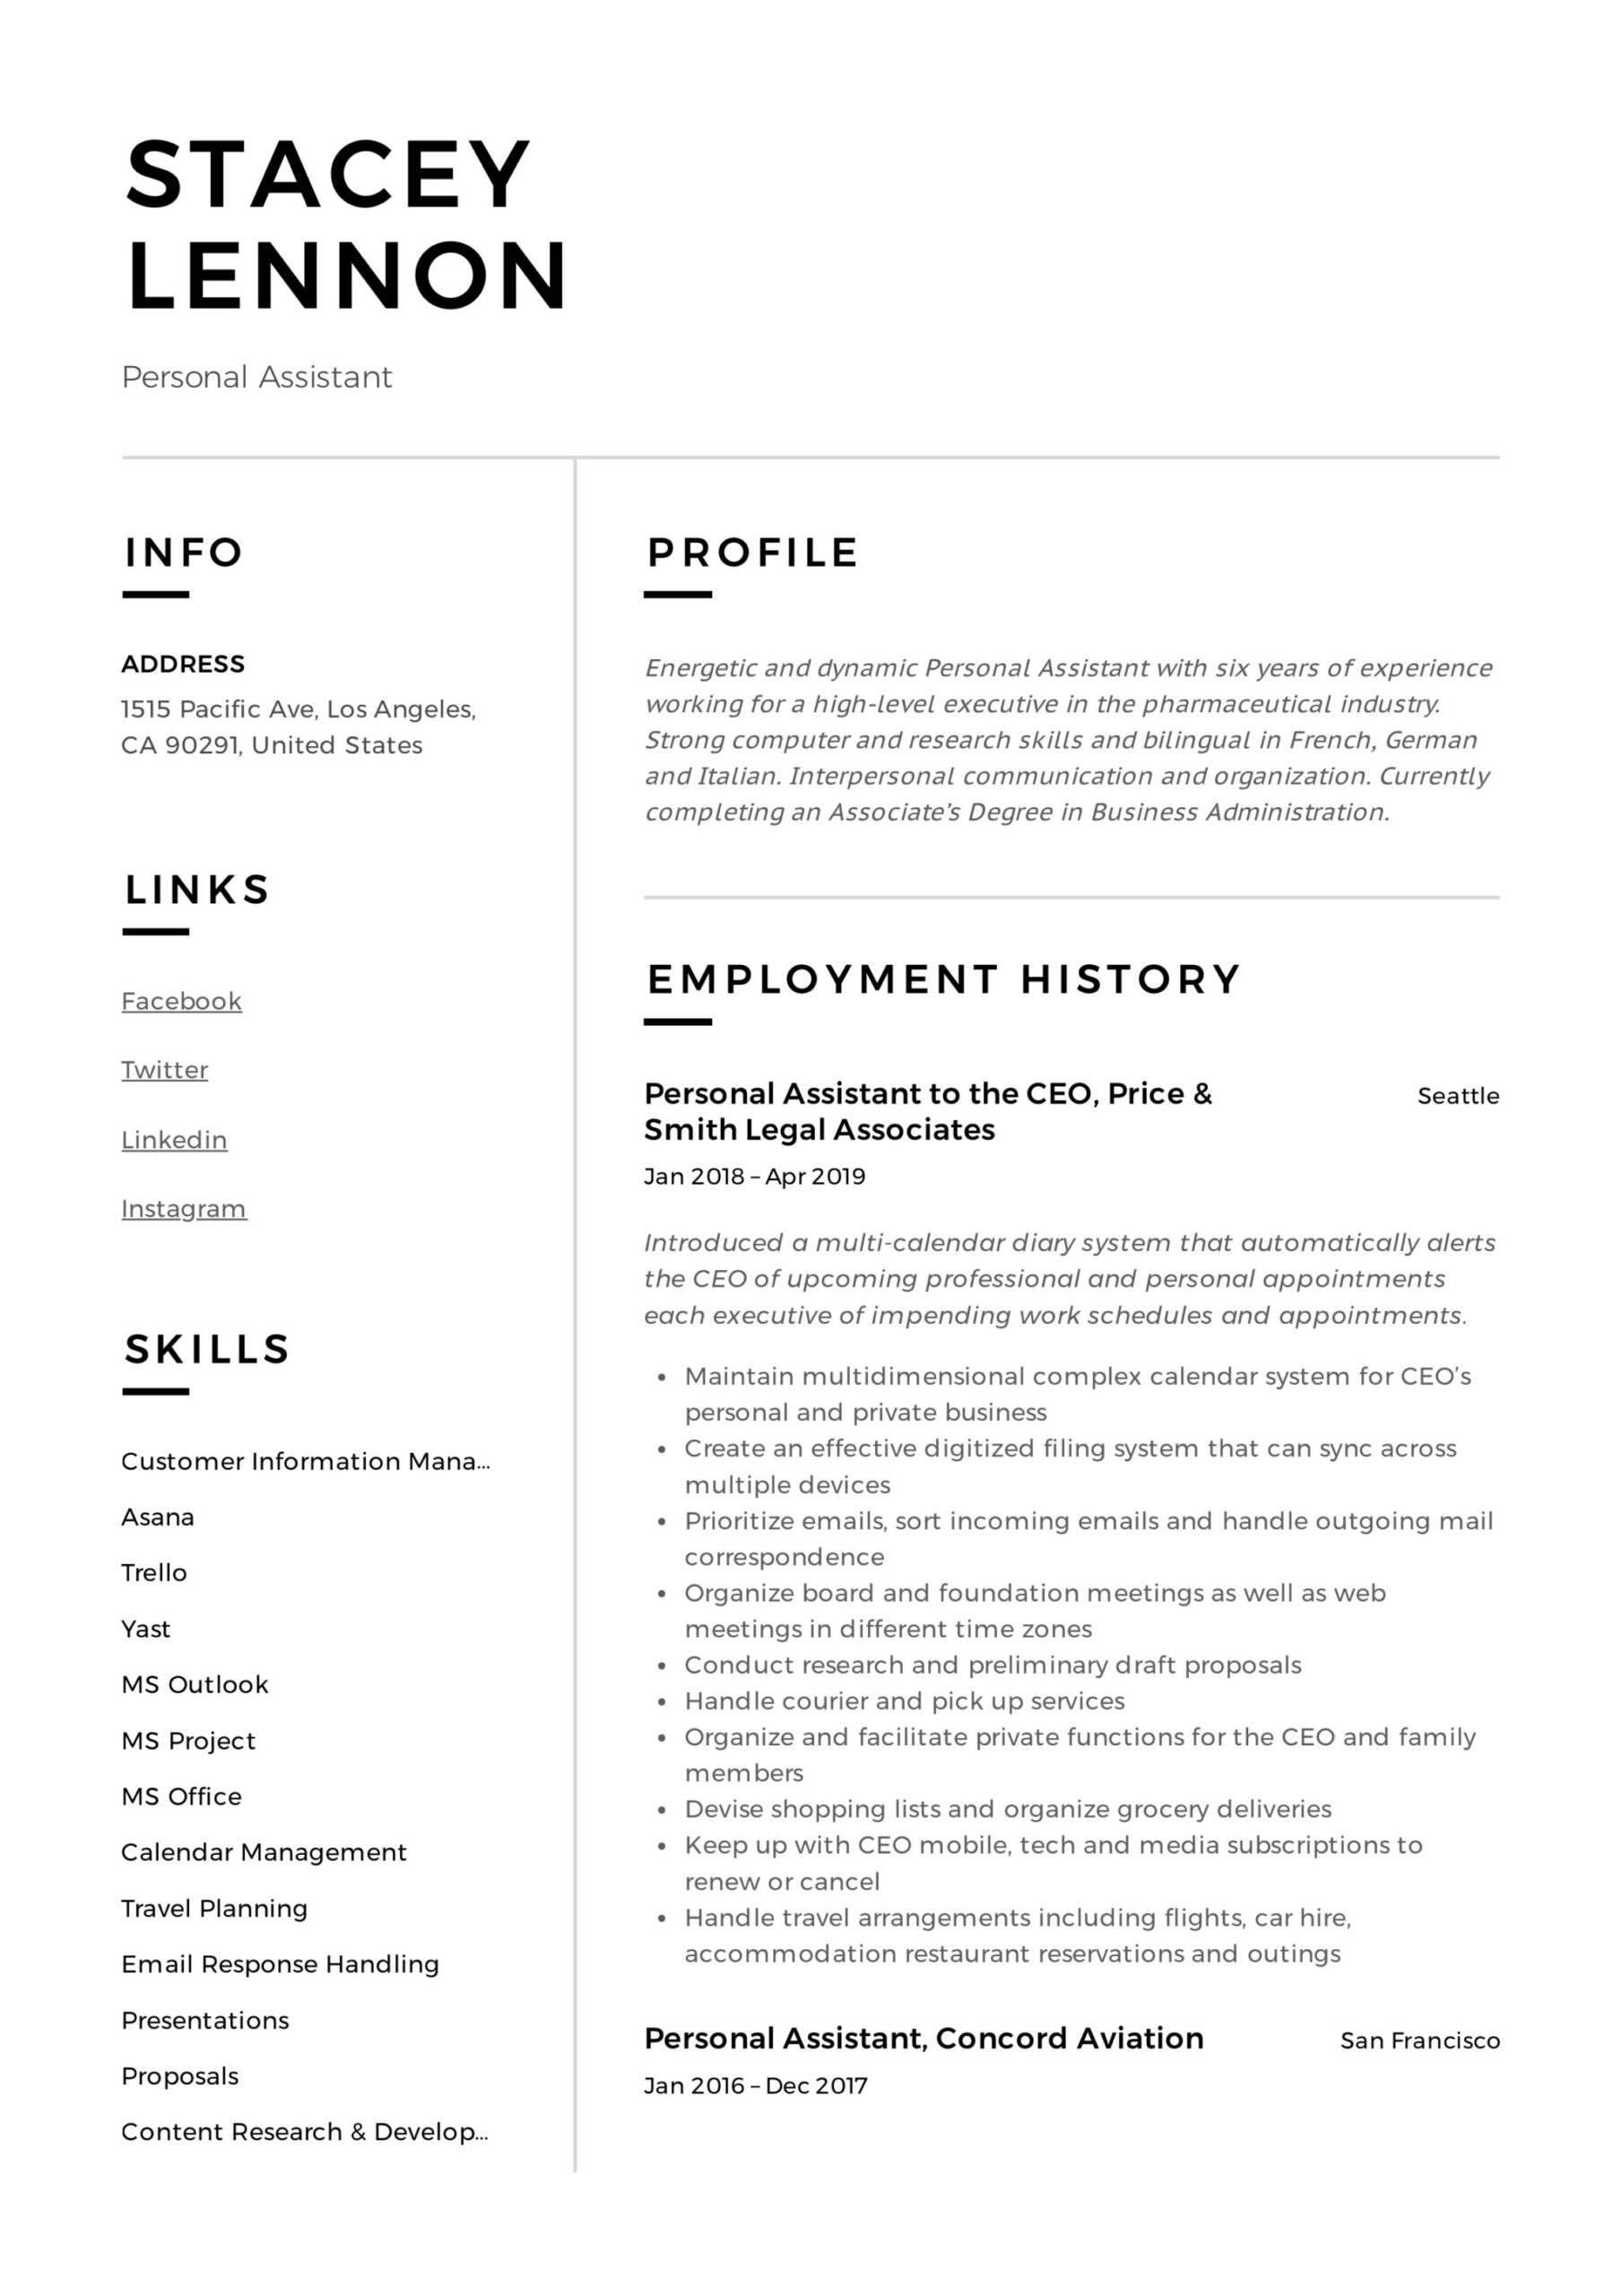 personal assistant resume writing guide templates pdf skills free creative infographic Resume Personal Assistant Skills Resume